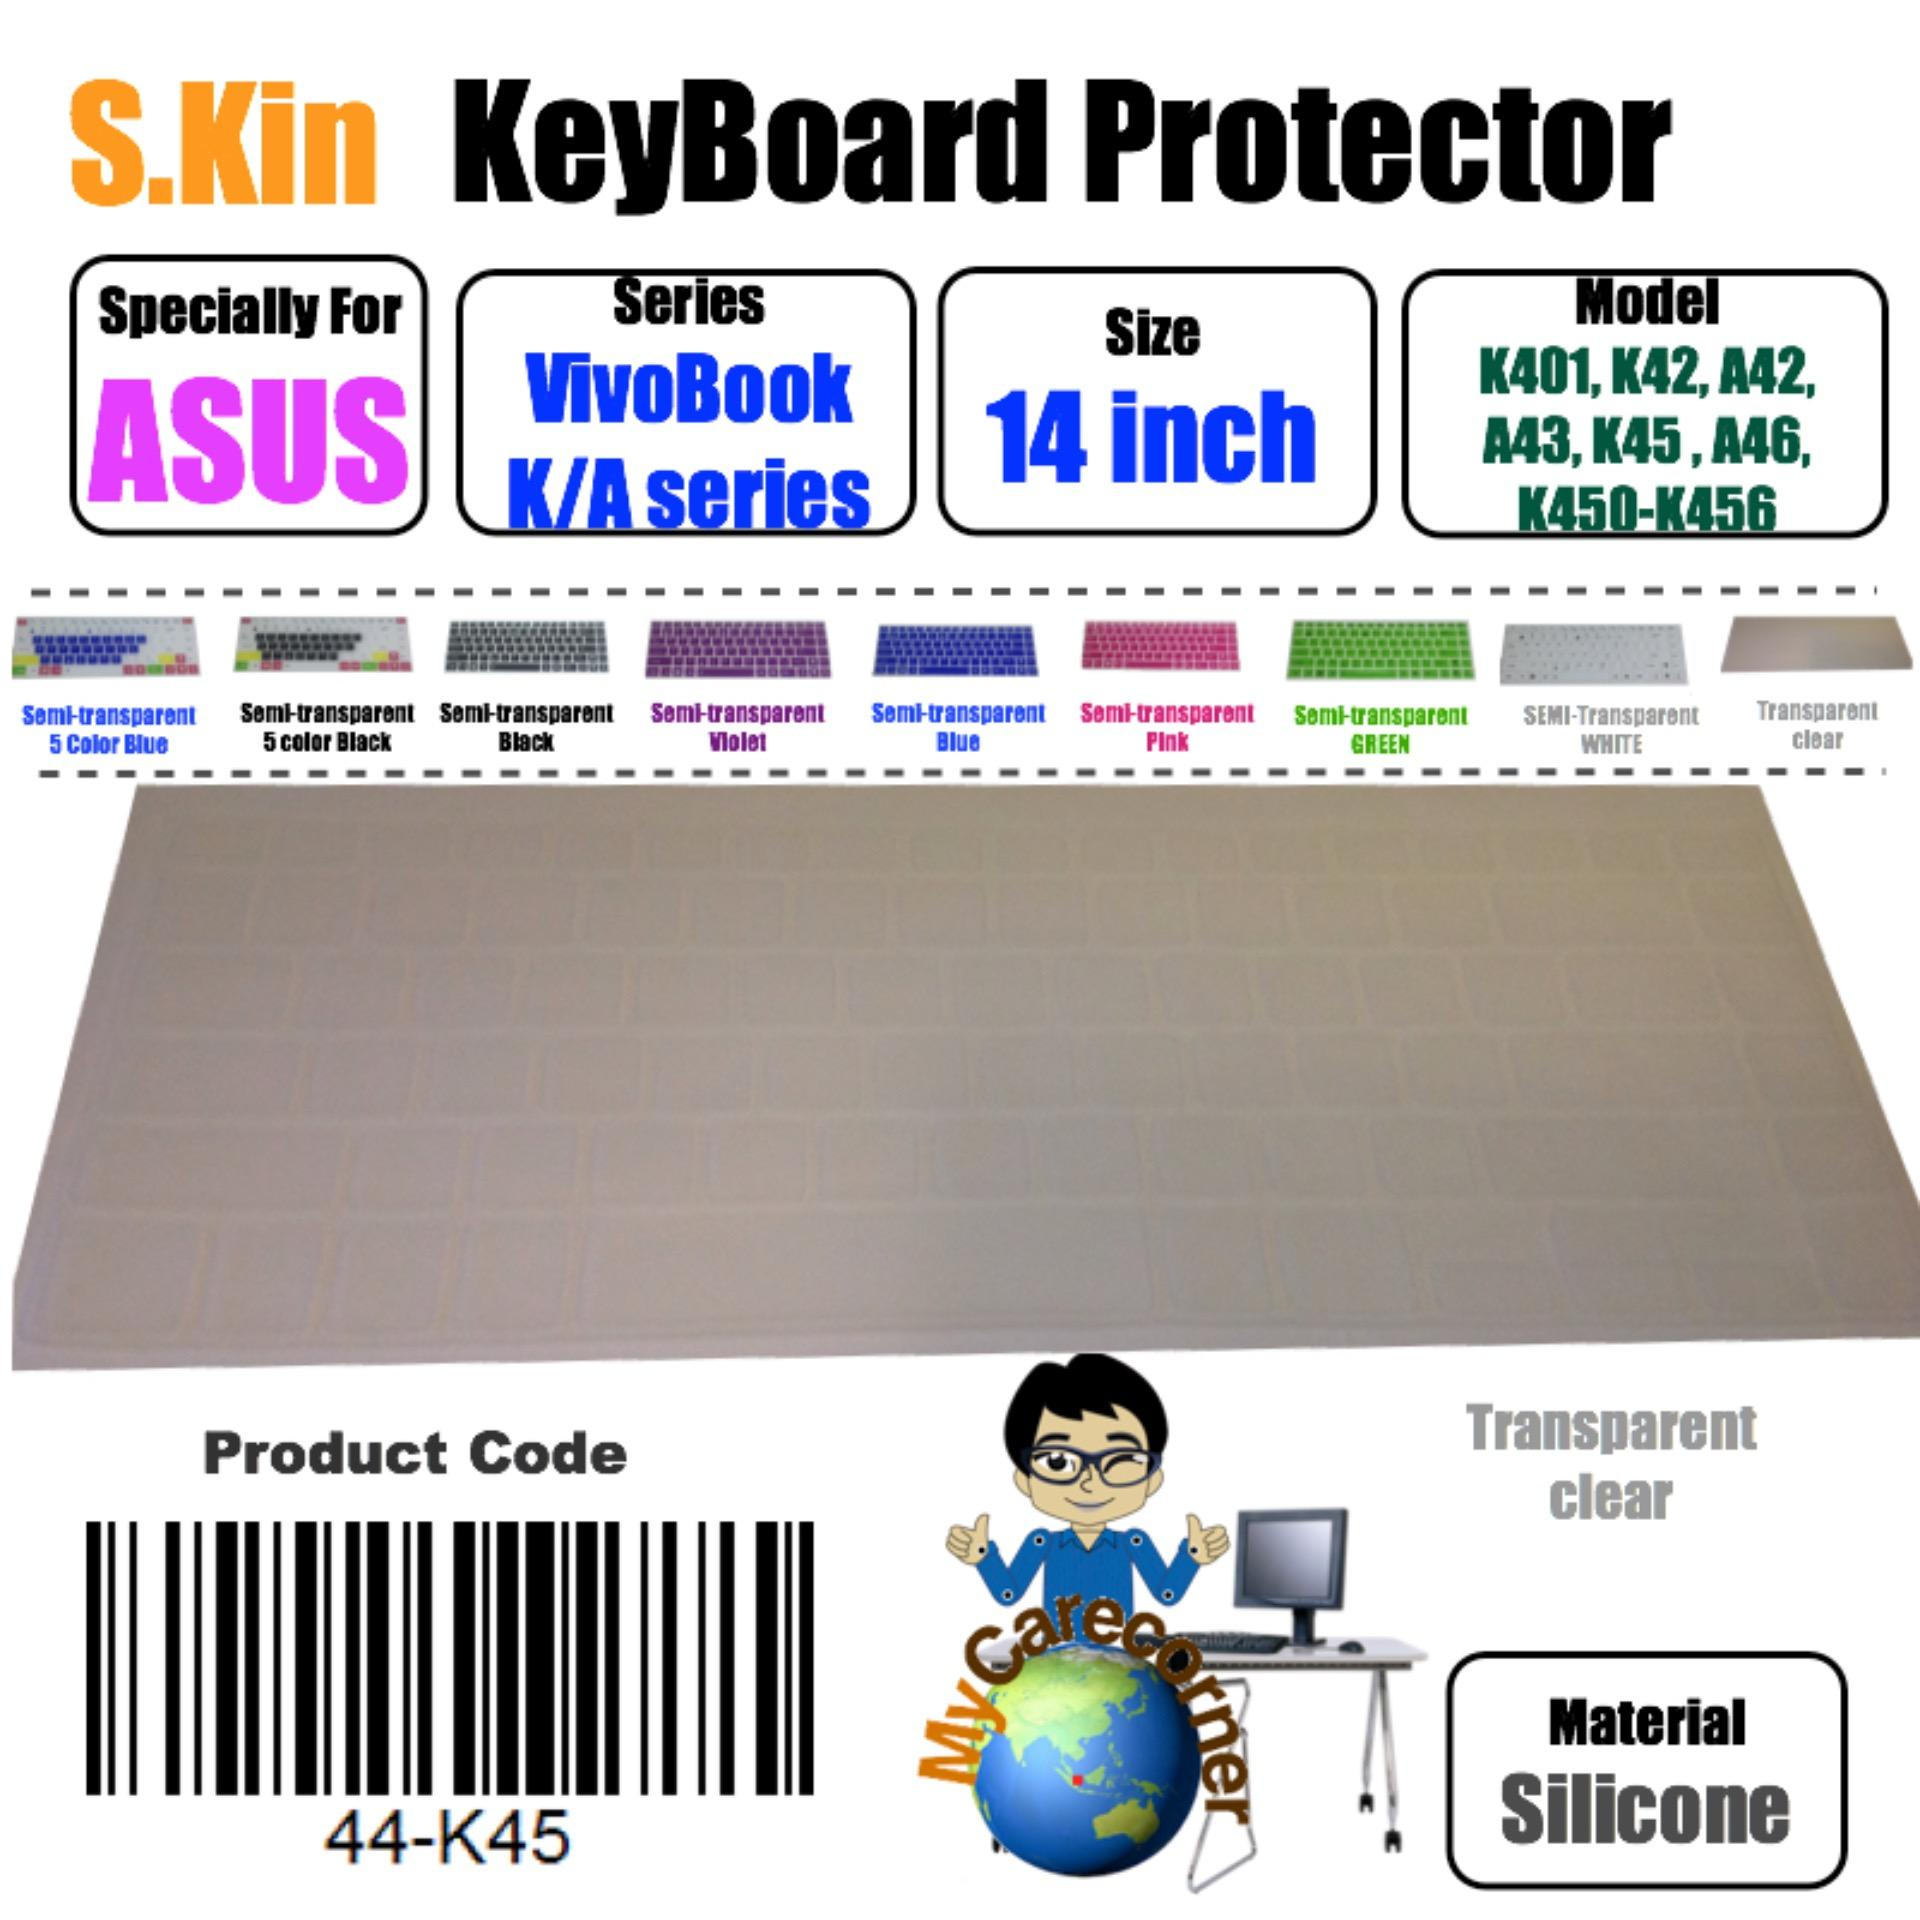 S.KIN 14 inch ASUS VivoBook K / A Series K401 K40 A42 K42 A43 K43 K45 K450 K451 K455 K456 K46 K48 14inch ASUS laptop Silicone Keyboard Cover  skin protector Membrane protective film ( 44-K45 ) local delivery